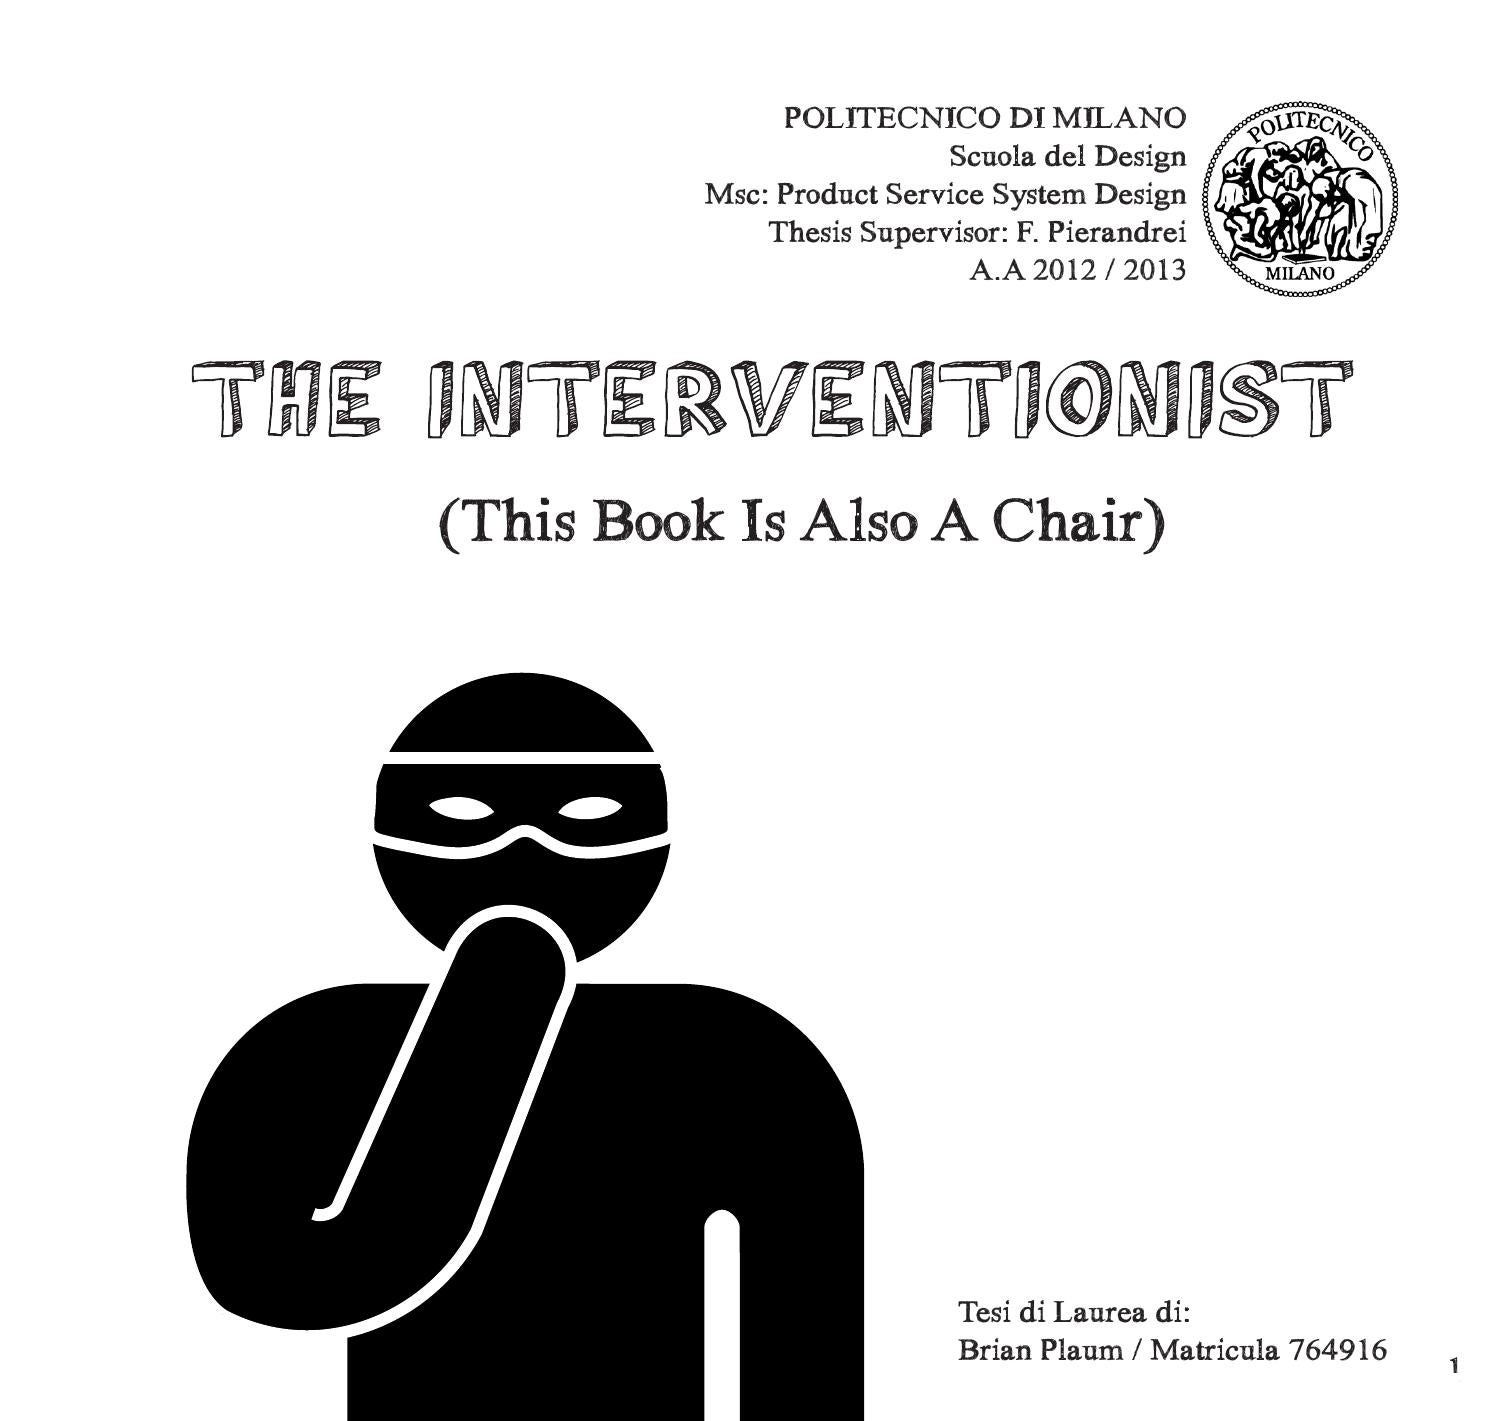 The master is directed by fausto brevi, professor at the scuola del design del politecnico di milano, and is offered to a limited number of maximum 20. The Interventionist By Brian Plaum Issuu